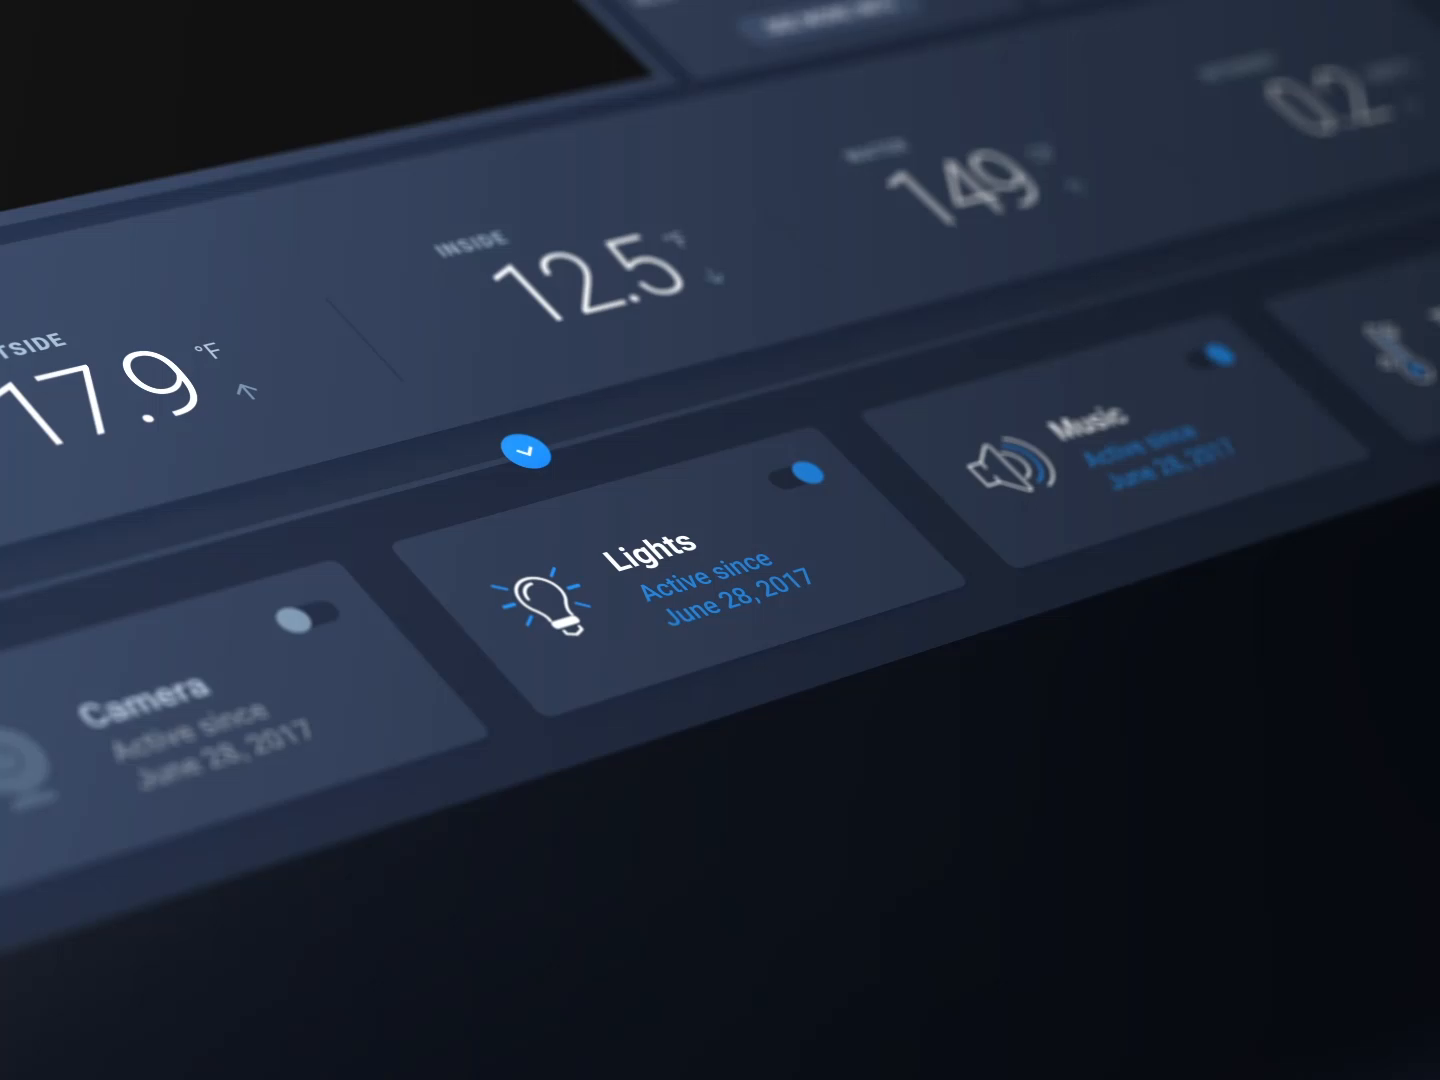 Smart Home—A digital UI kit for the physical world